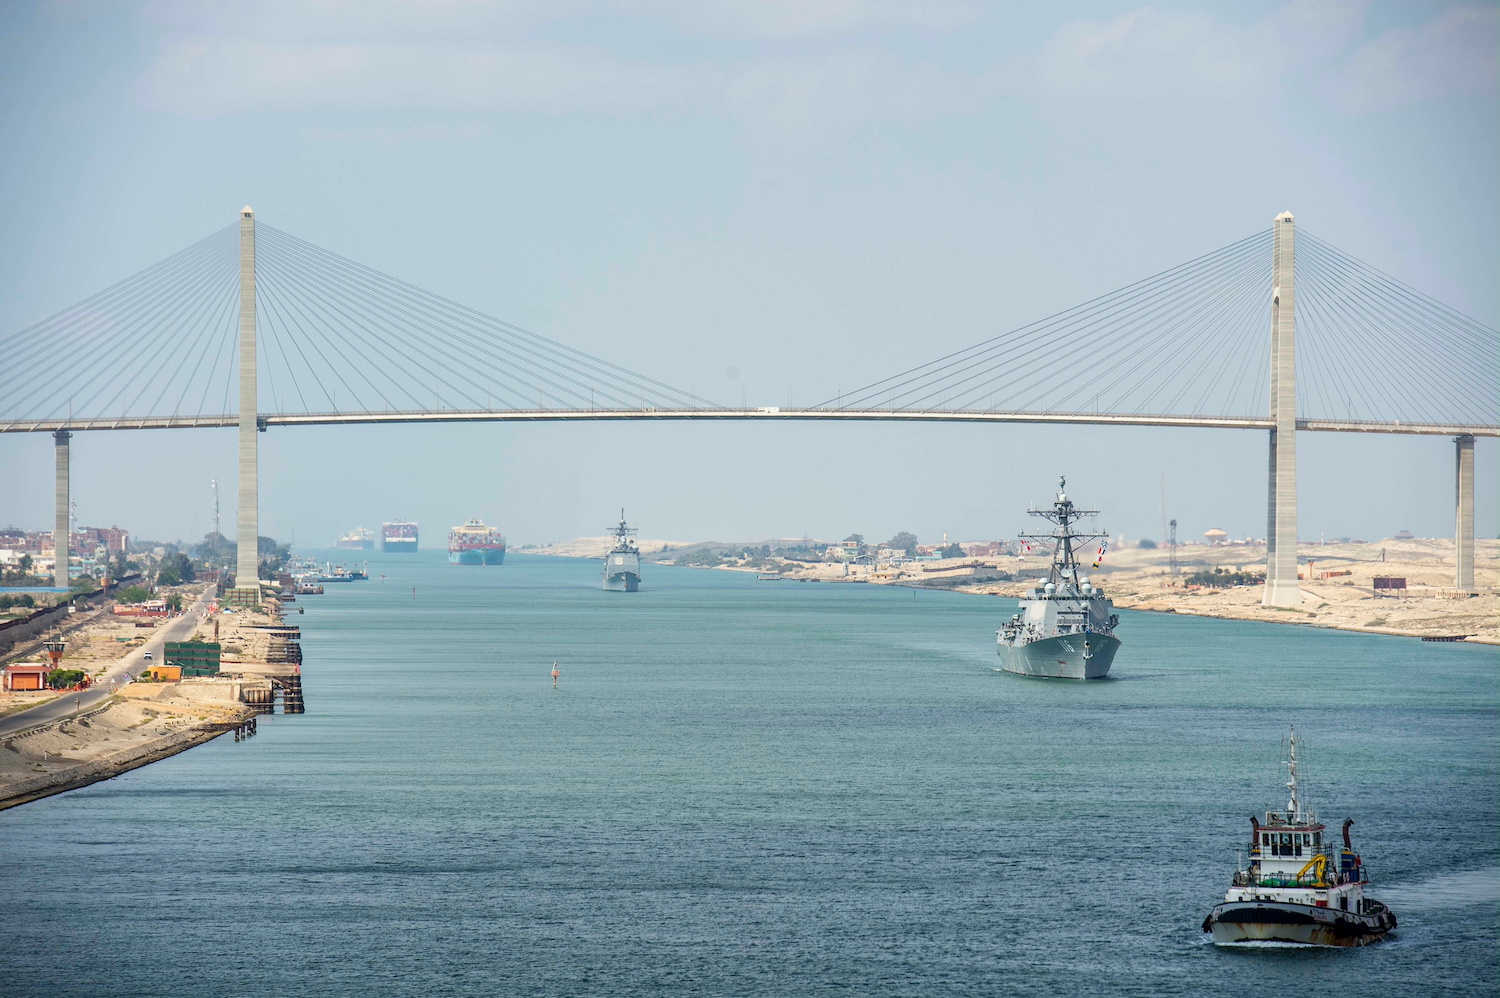 Suez Canal Authority says Egypt will seek $1 billion in damages